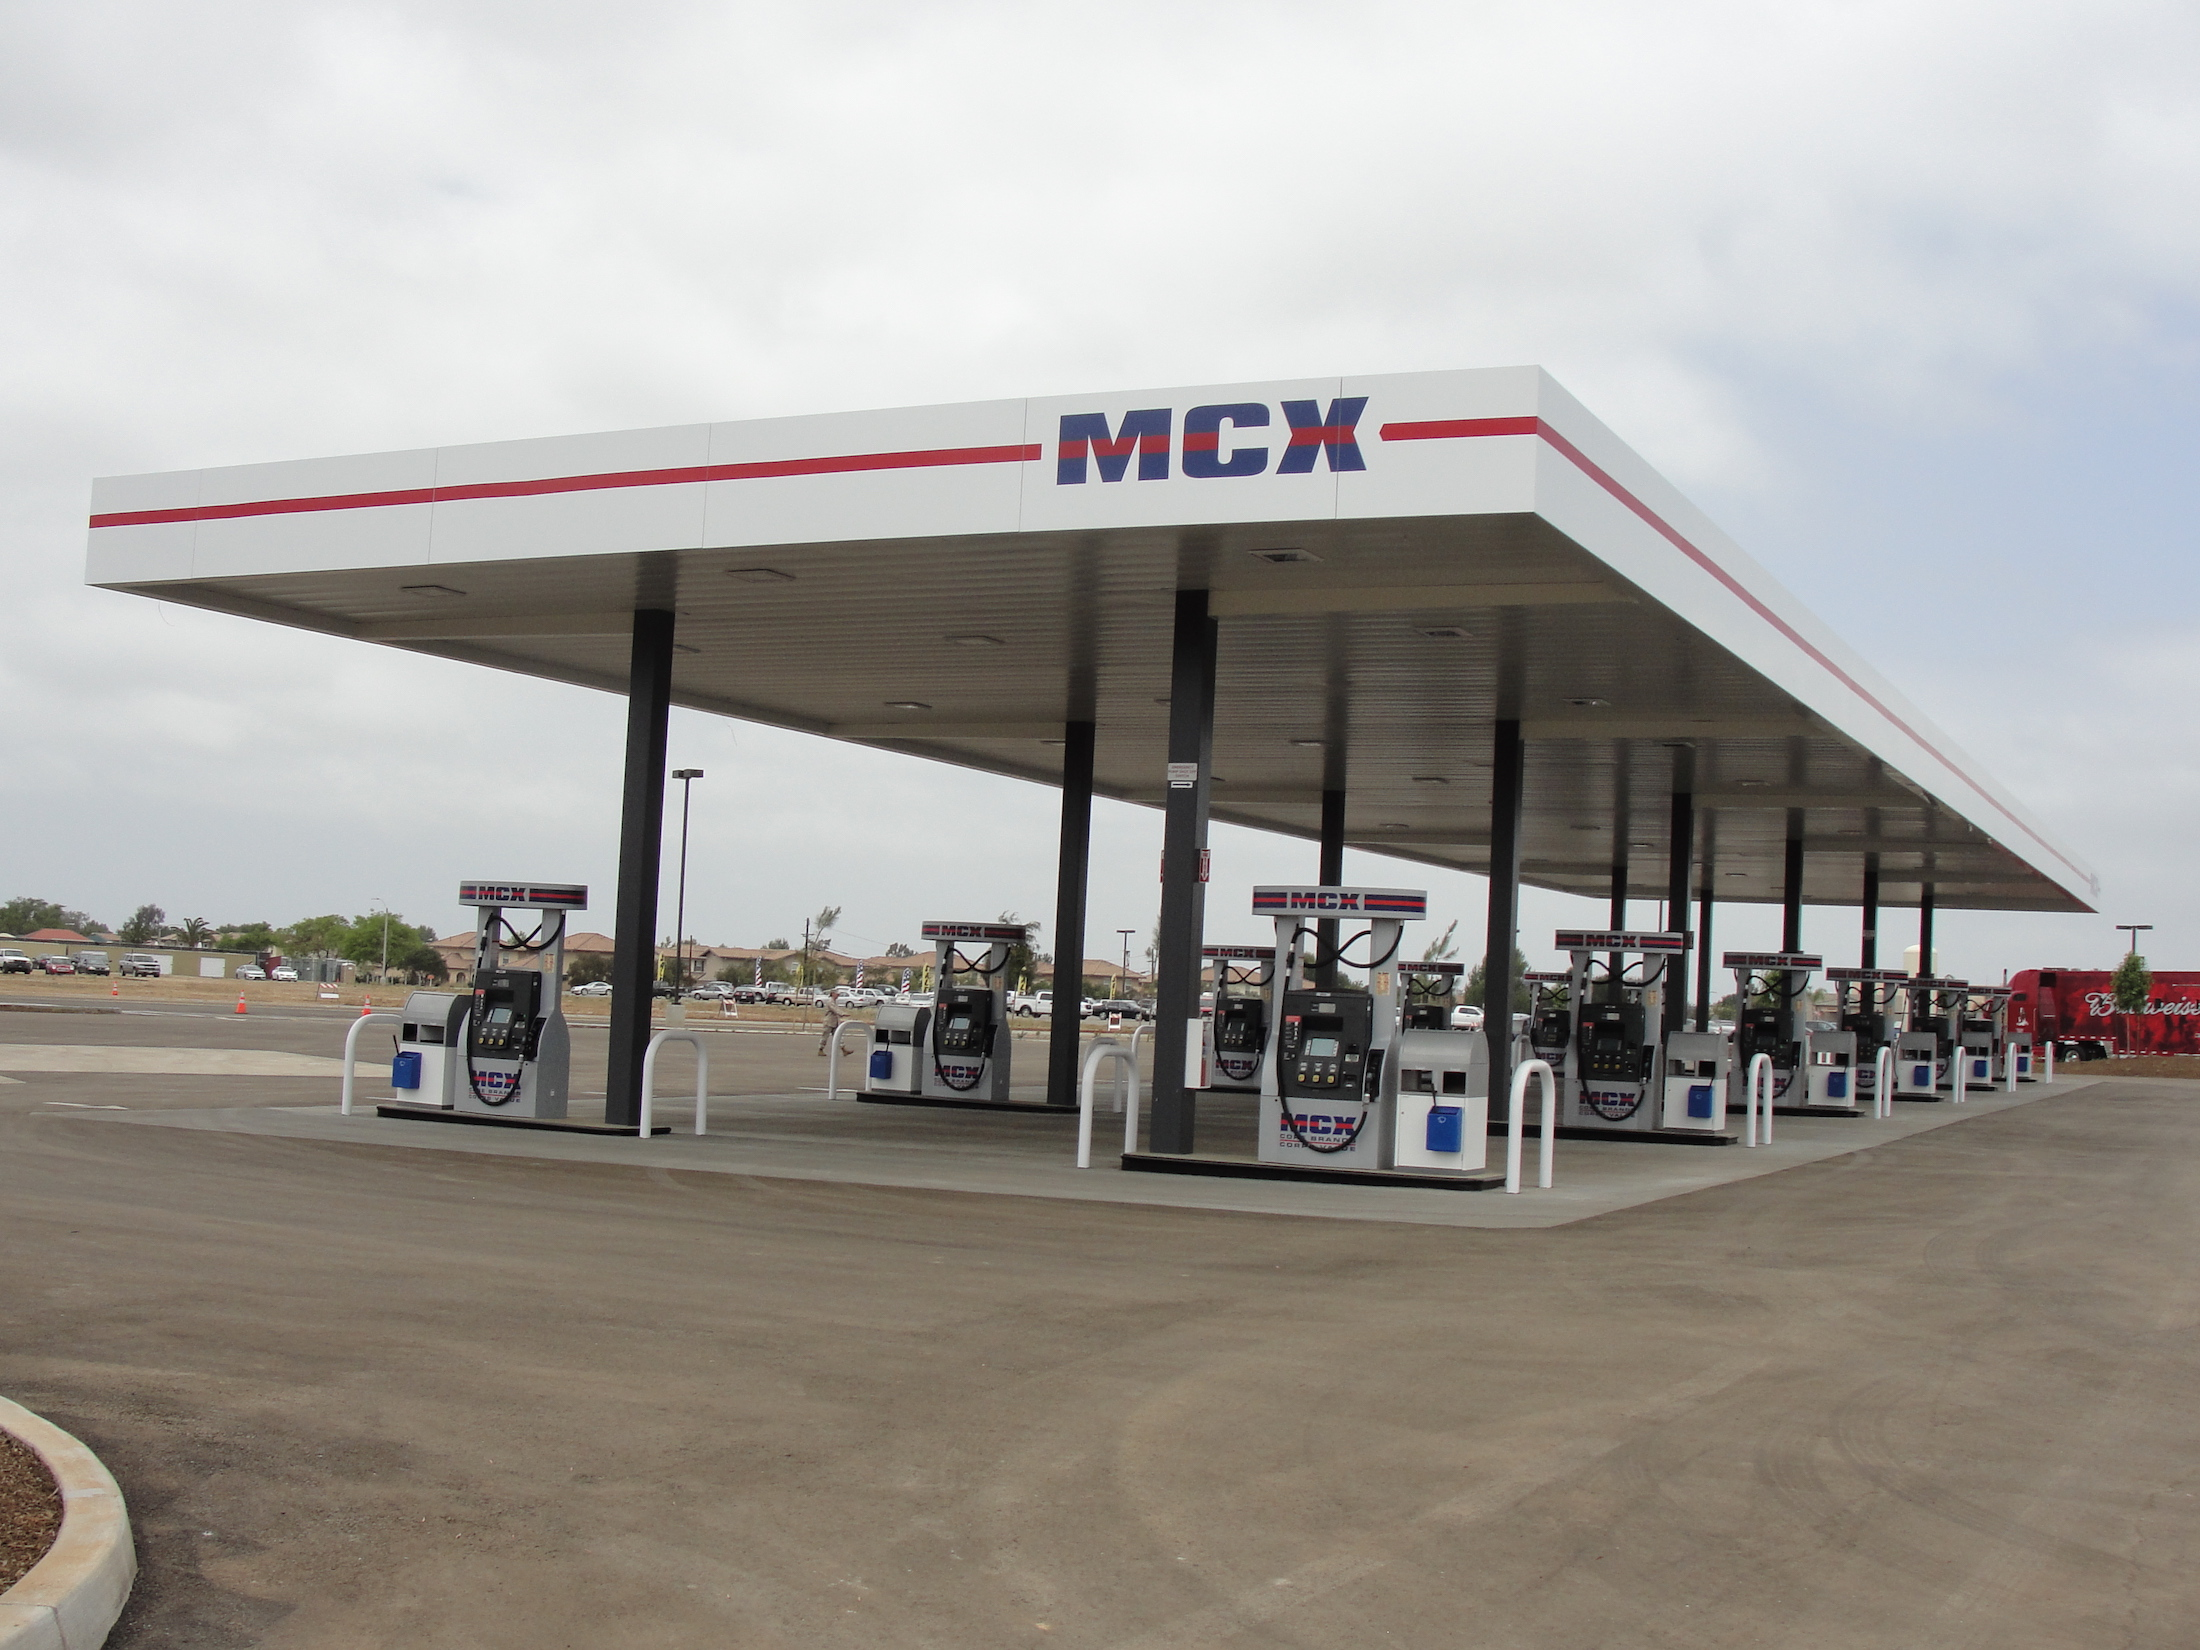 Western Pump | MCX Fuel Station Construction and Build